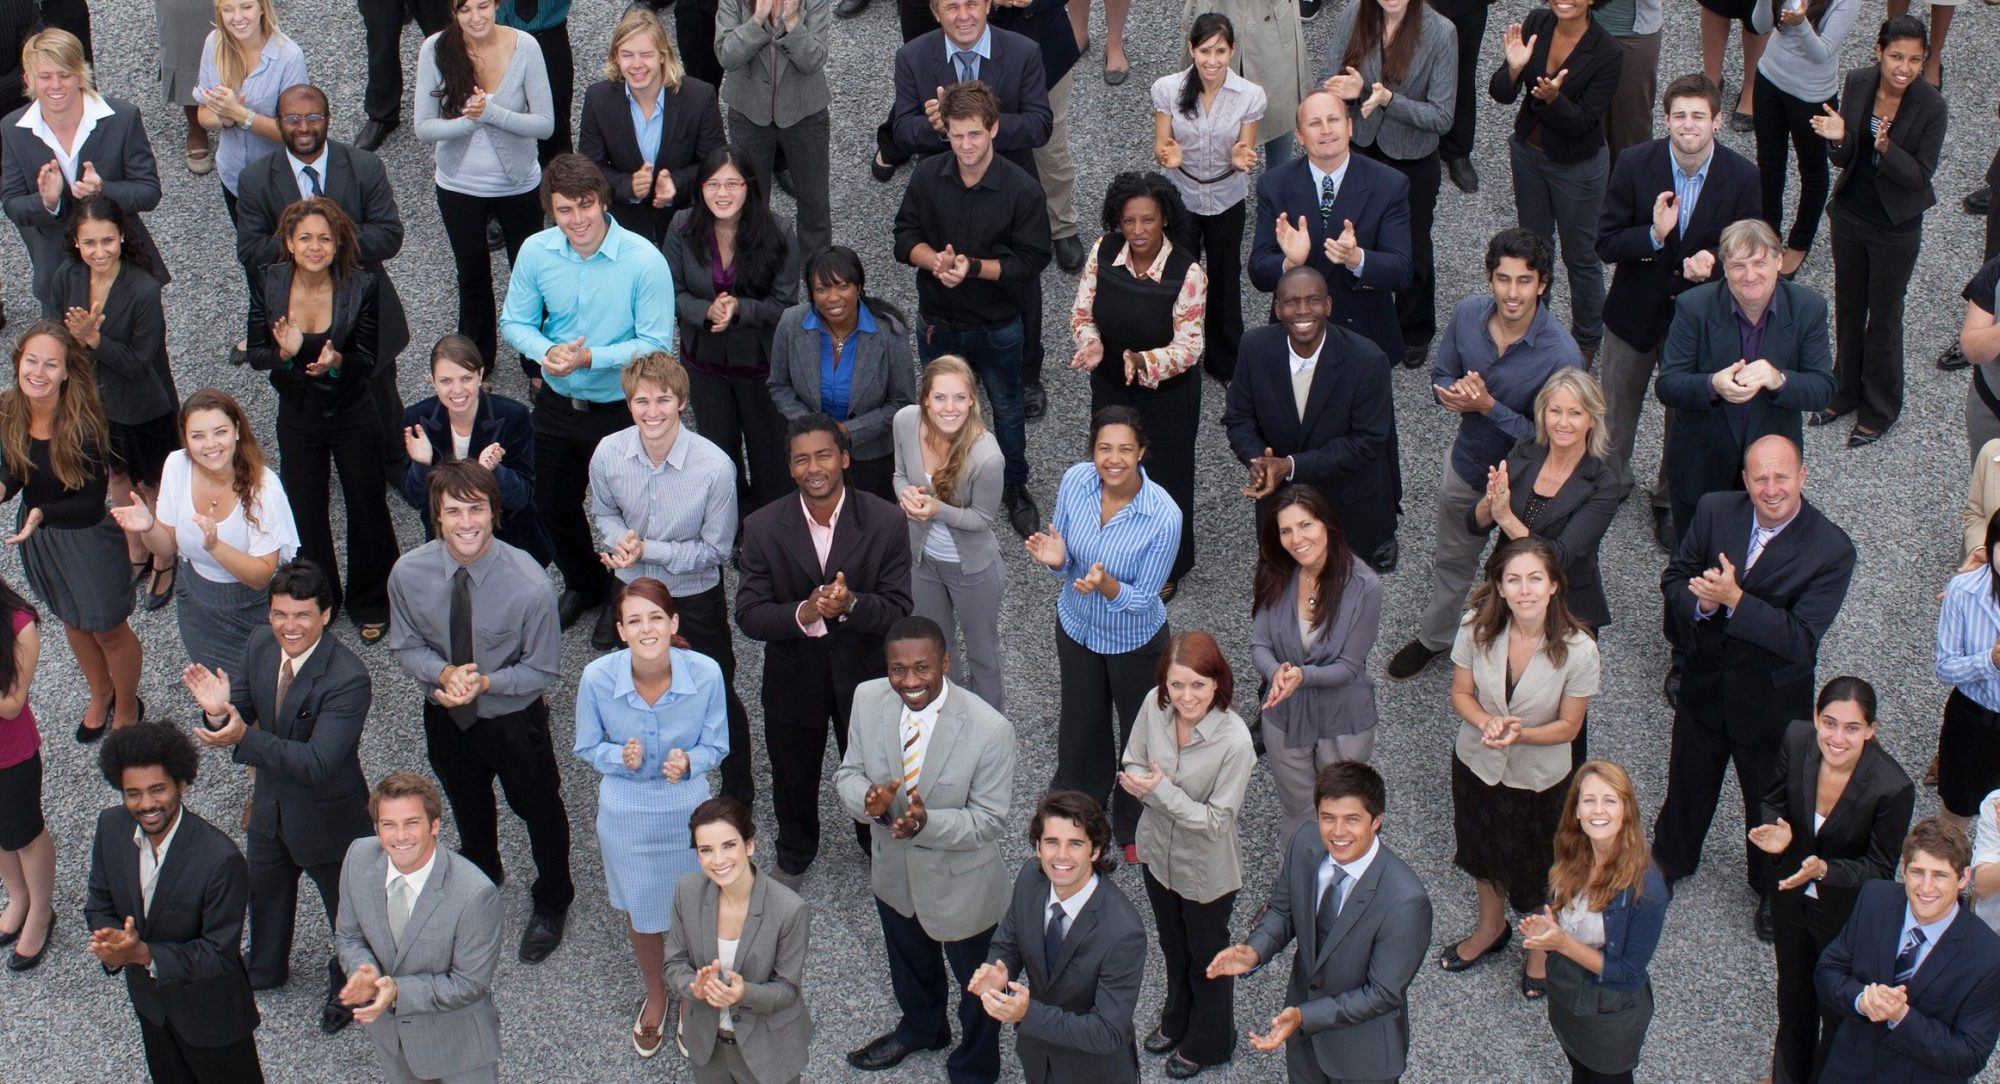 Here is a large, diverse crowd of business working professionals socially distancing standing outside dressed in smart attire.